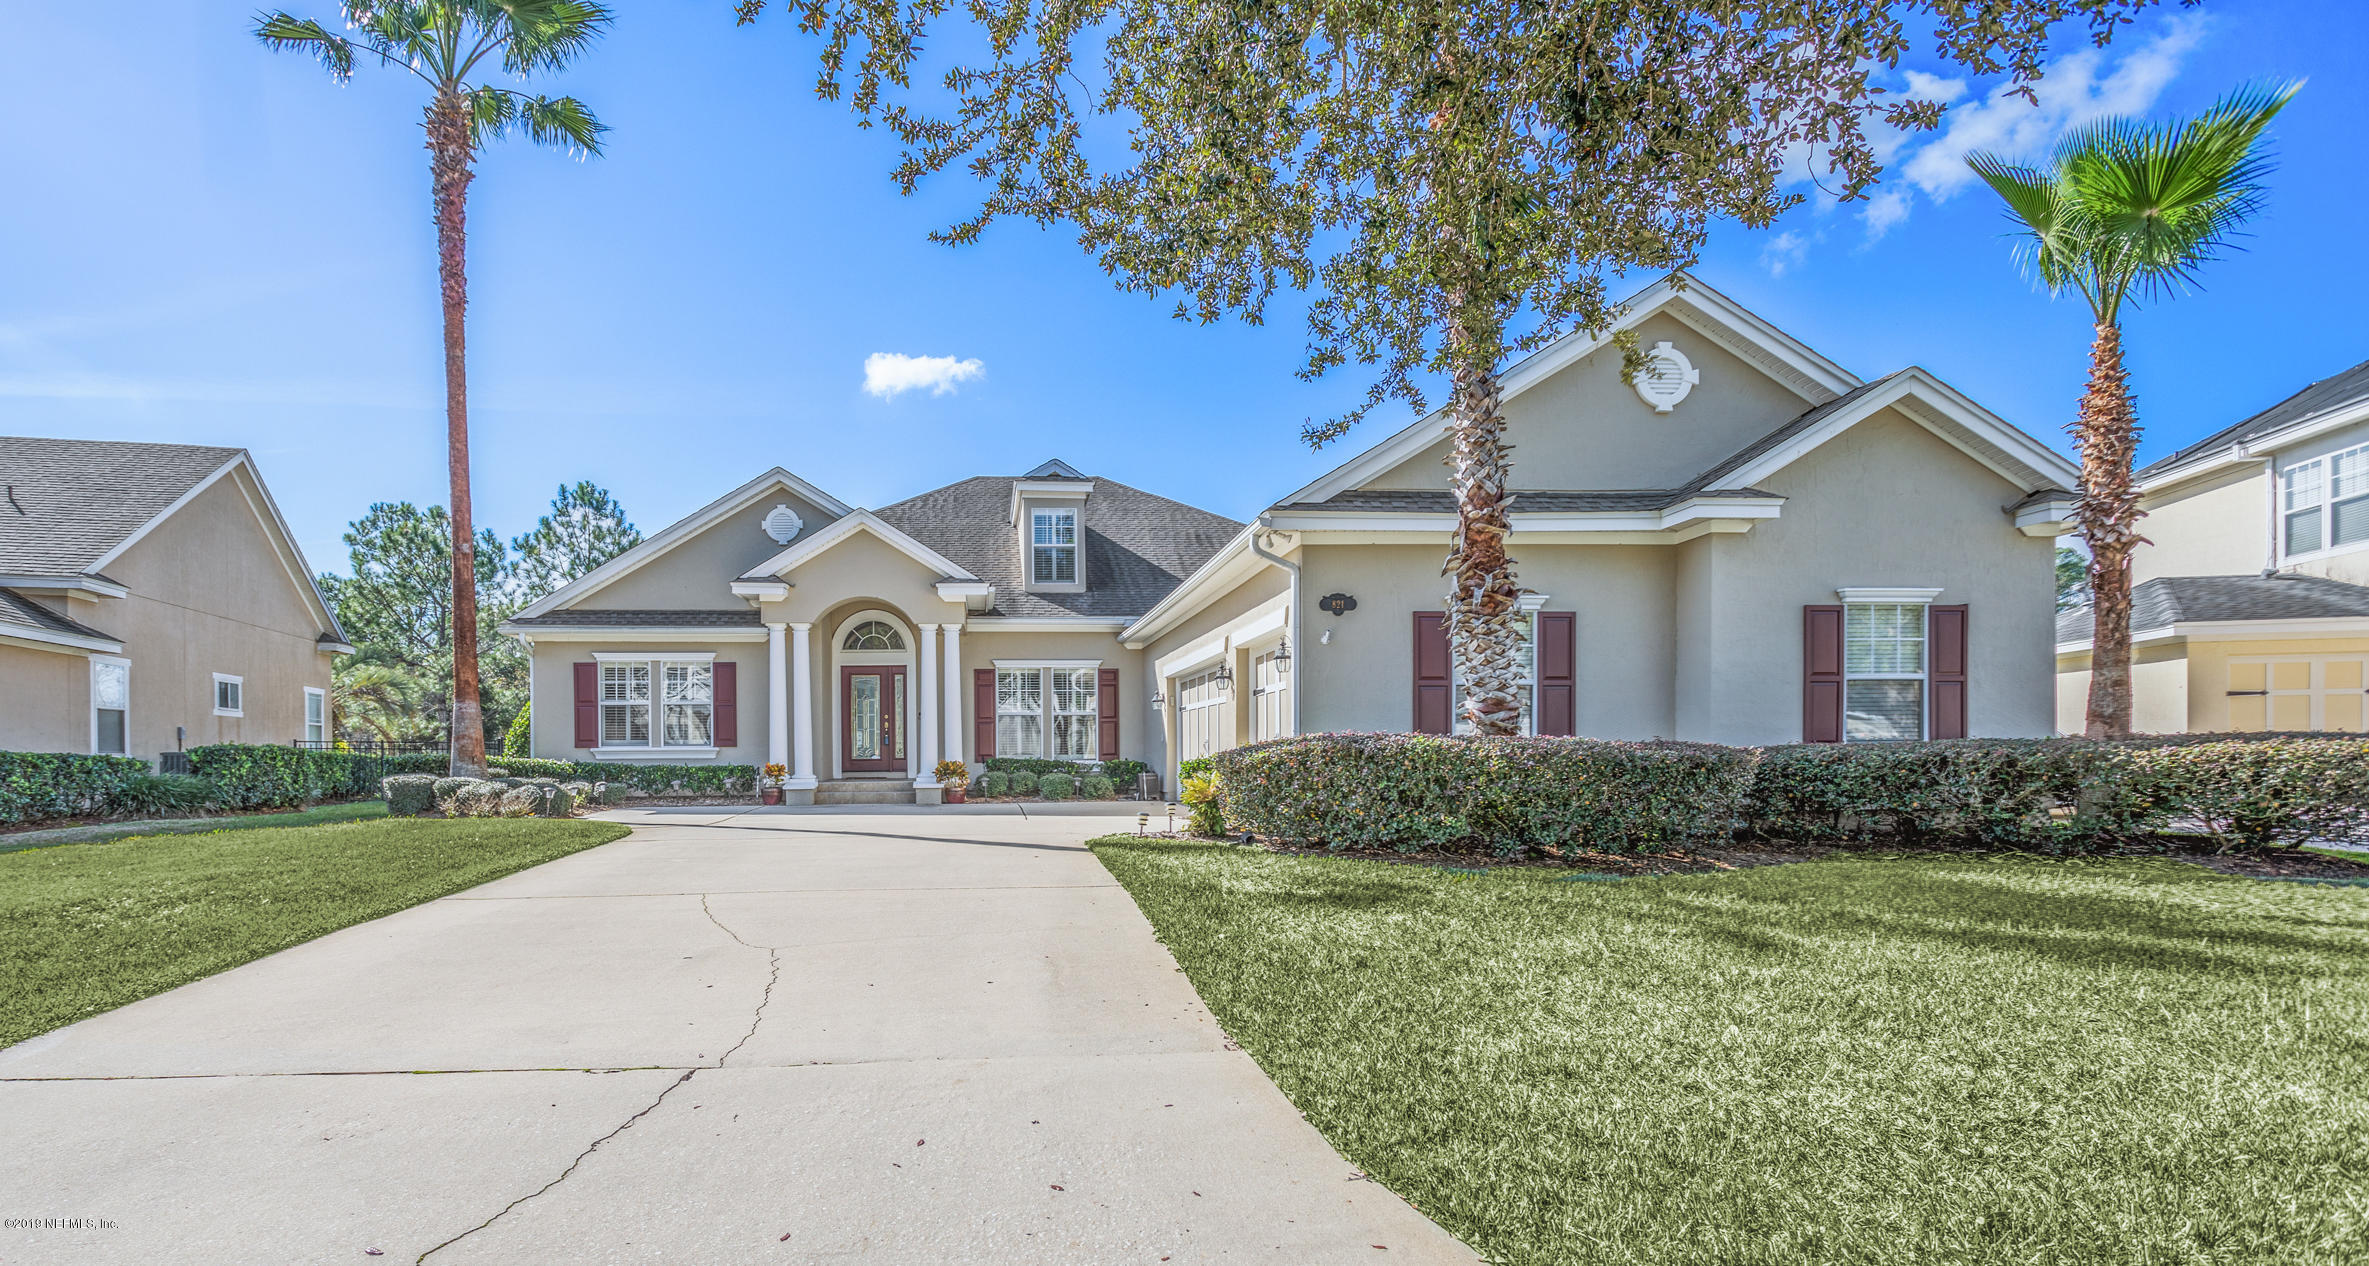 821 EAGLE POINT, ST AUGUSTINE, FLORIDA 32092, 4 Bedrooms Bedrooms, ,3 BathroomsBathrooms,Residential - single family,For sale,EAGLE POINT,972830